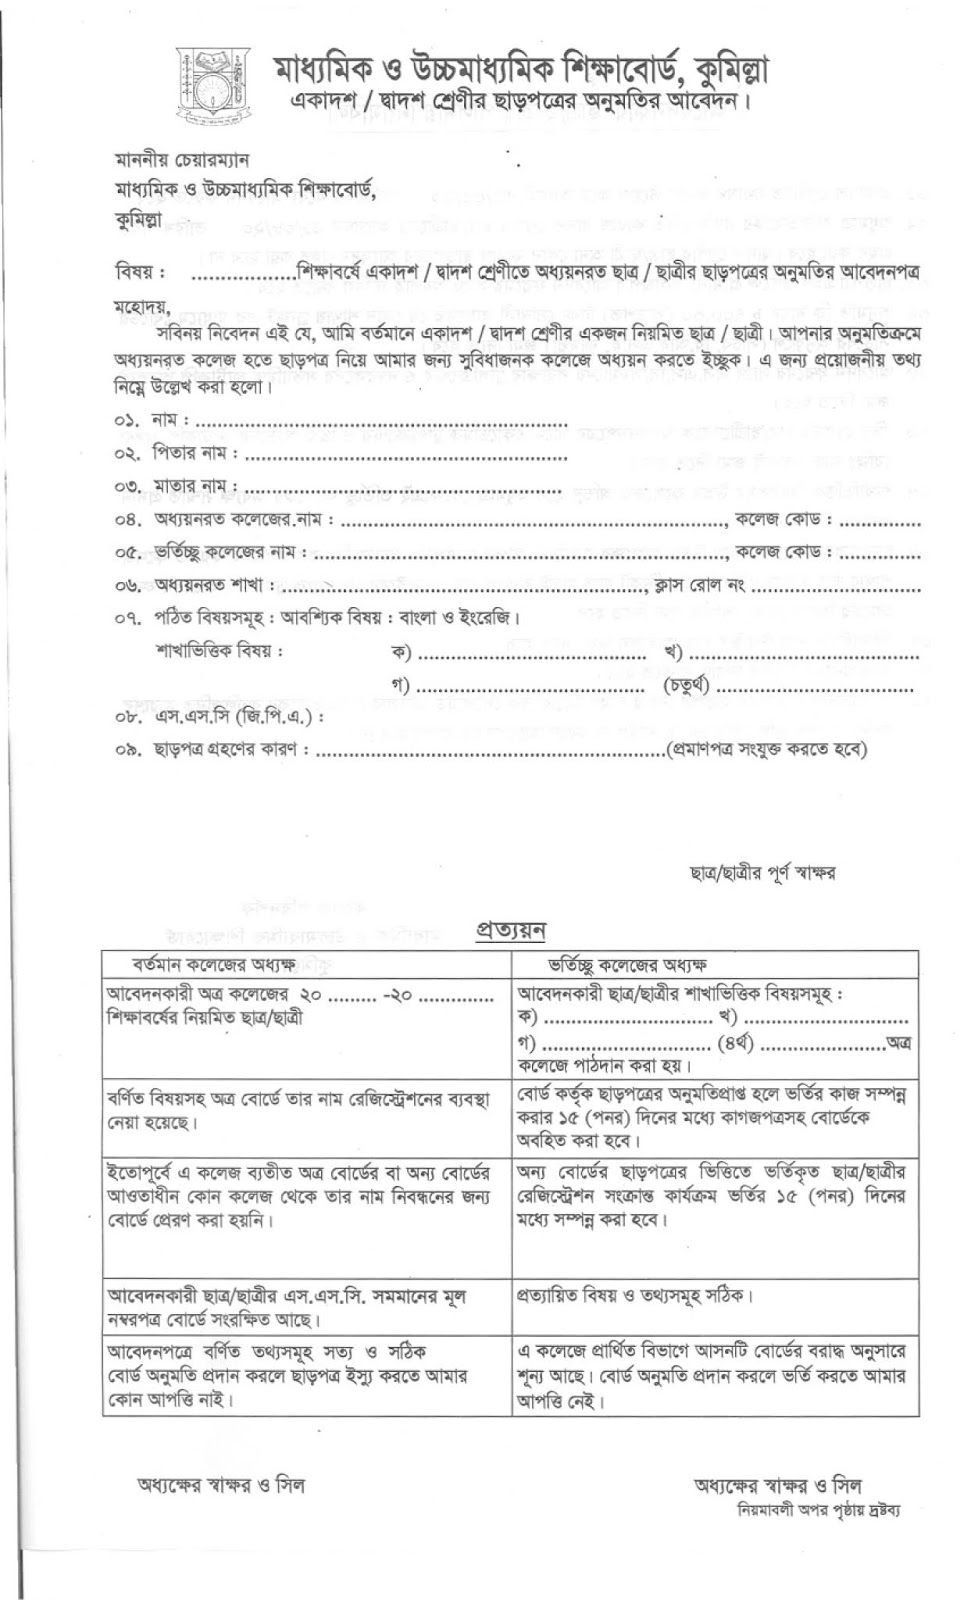 Comilla Board College Transfer Form  (TC Form) | XI XII College Transfer From | Comillaboard.gov.bd